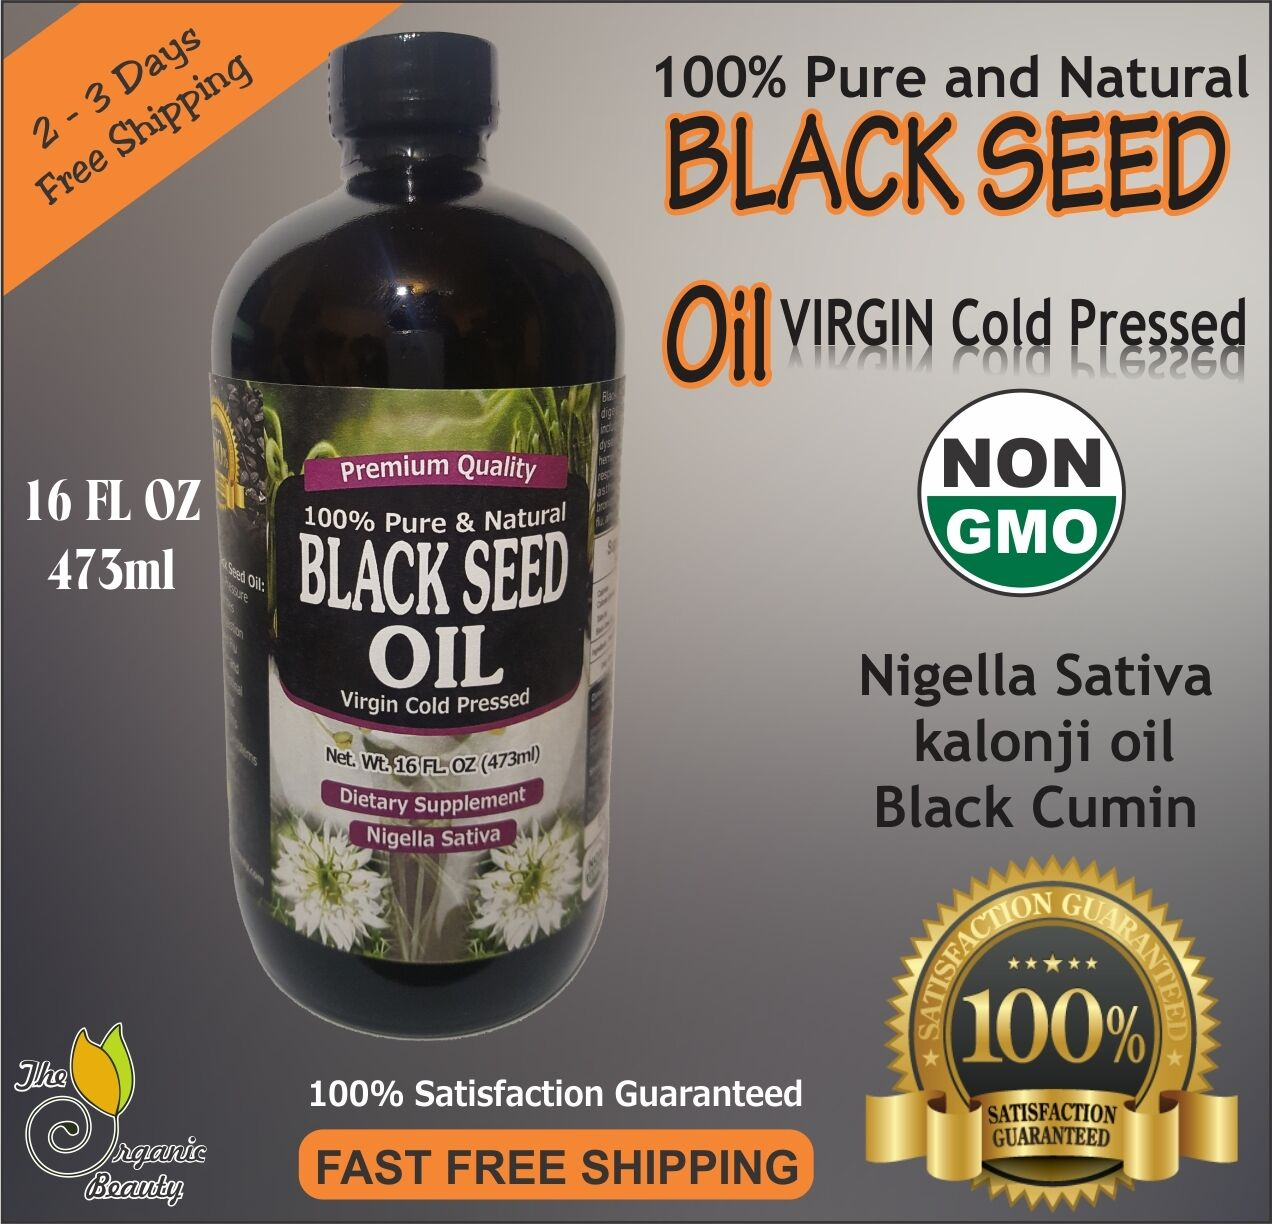 16 oz 100% Pure Black Seed Oil Cold Pressed Cumin Nigella Sativa non GMO